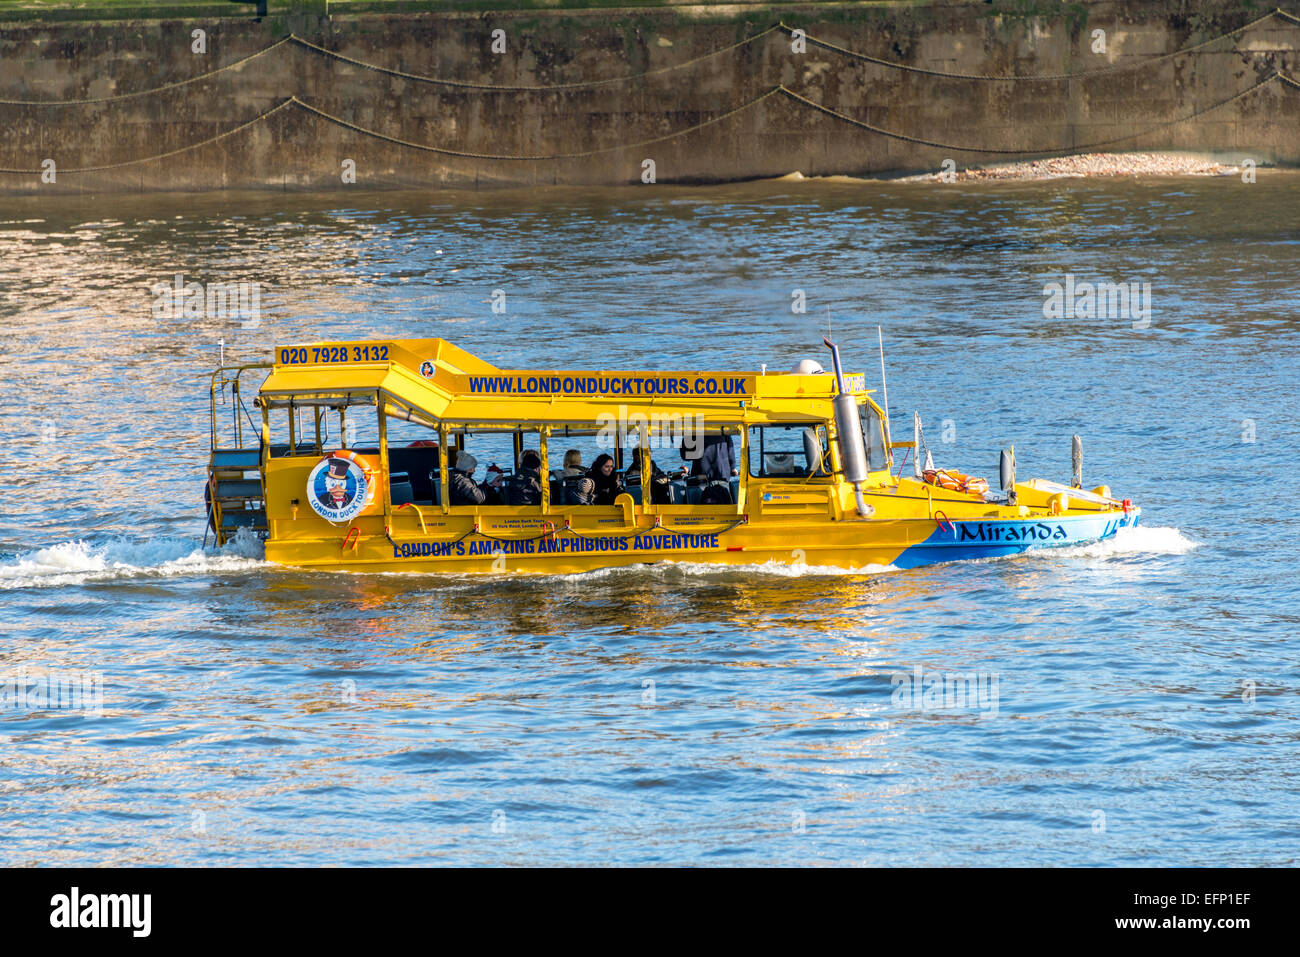 London Duck Tours is a sighseeing tour on board a vehicle which can drive on the road and enter the River Thames - Stock Image